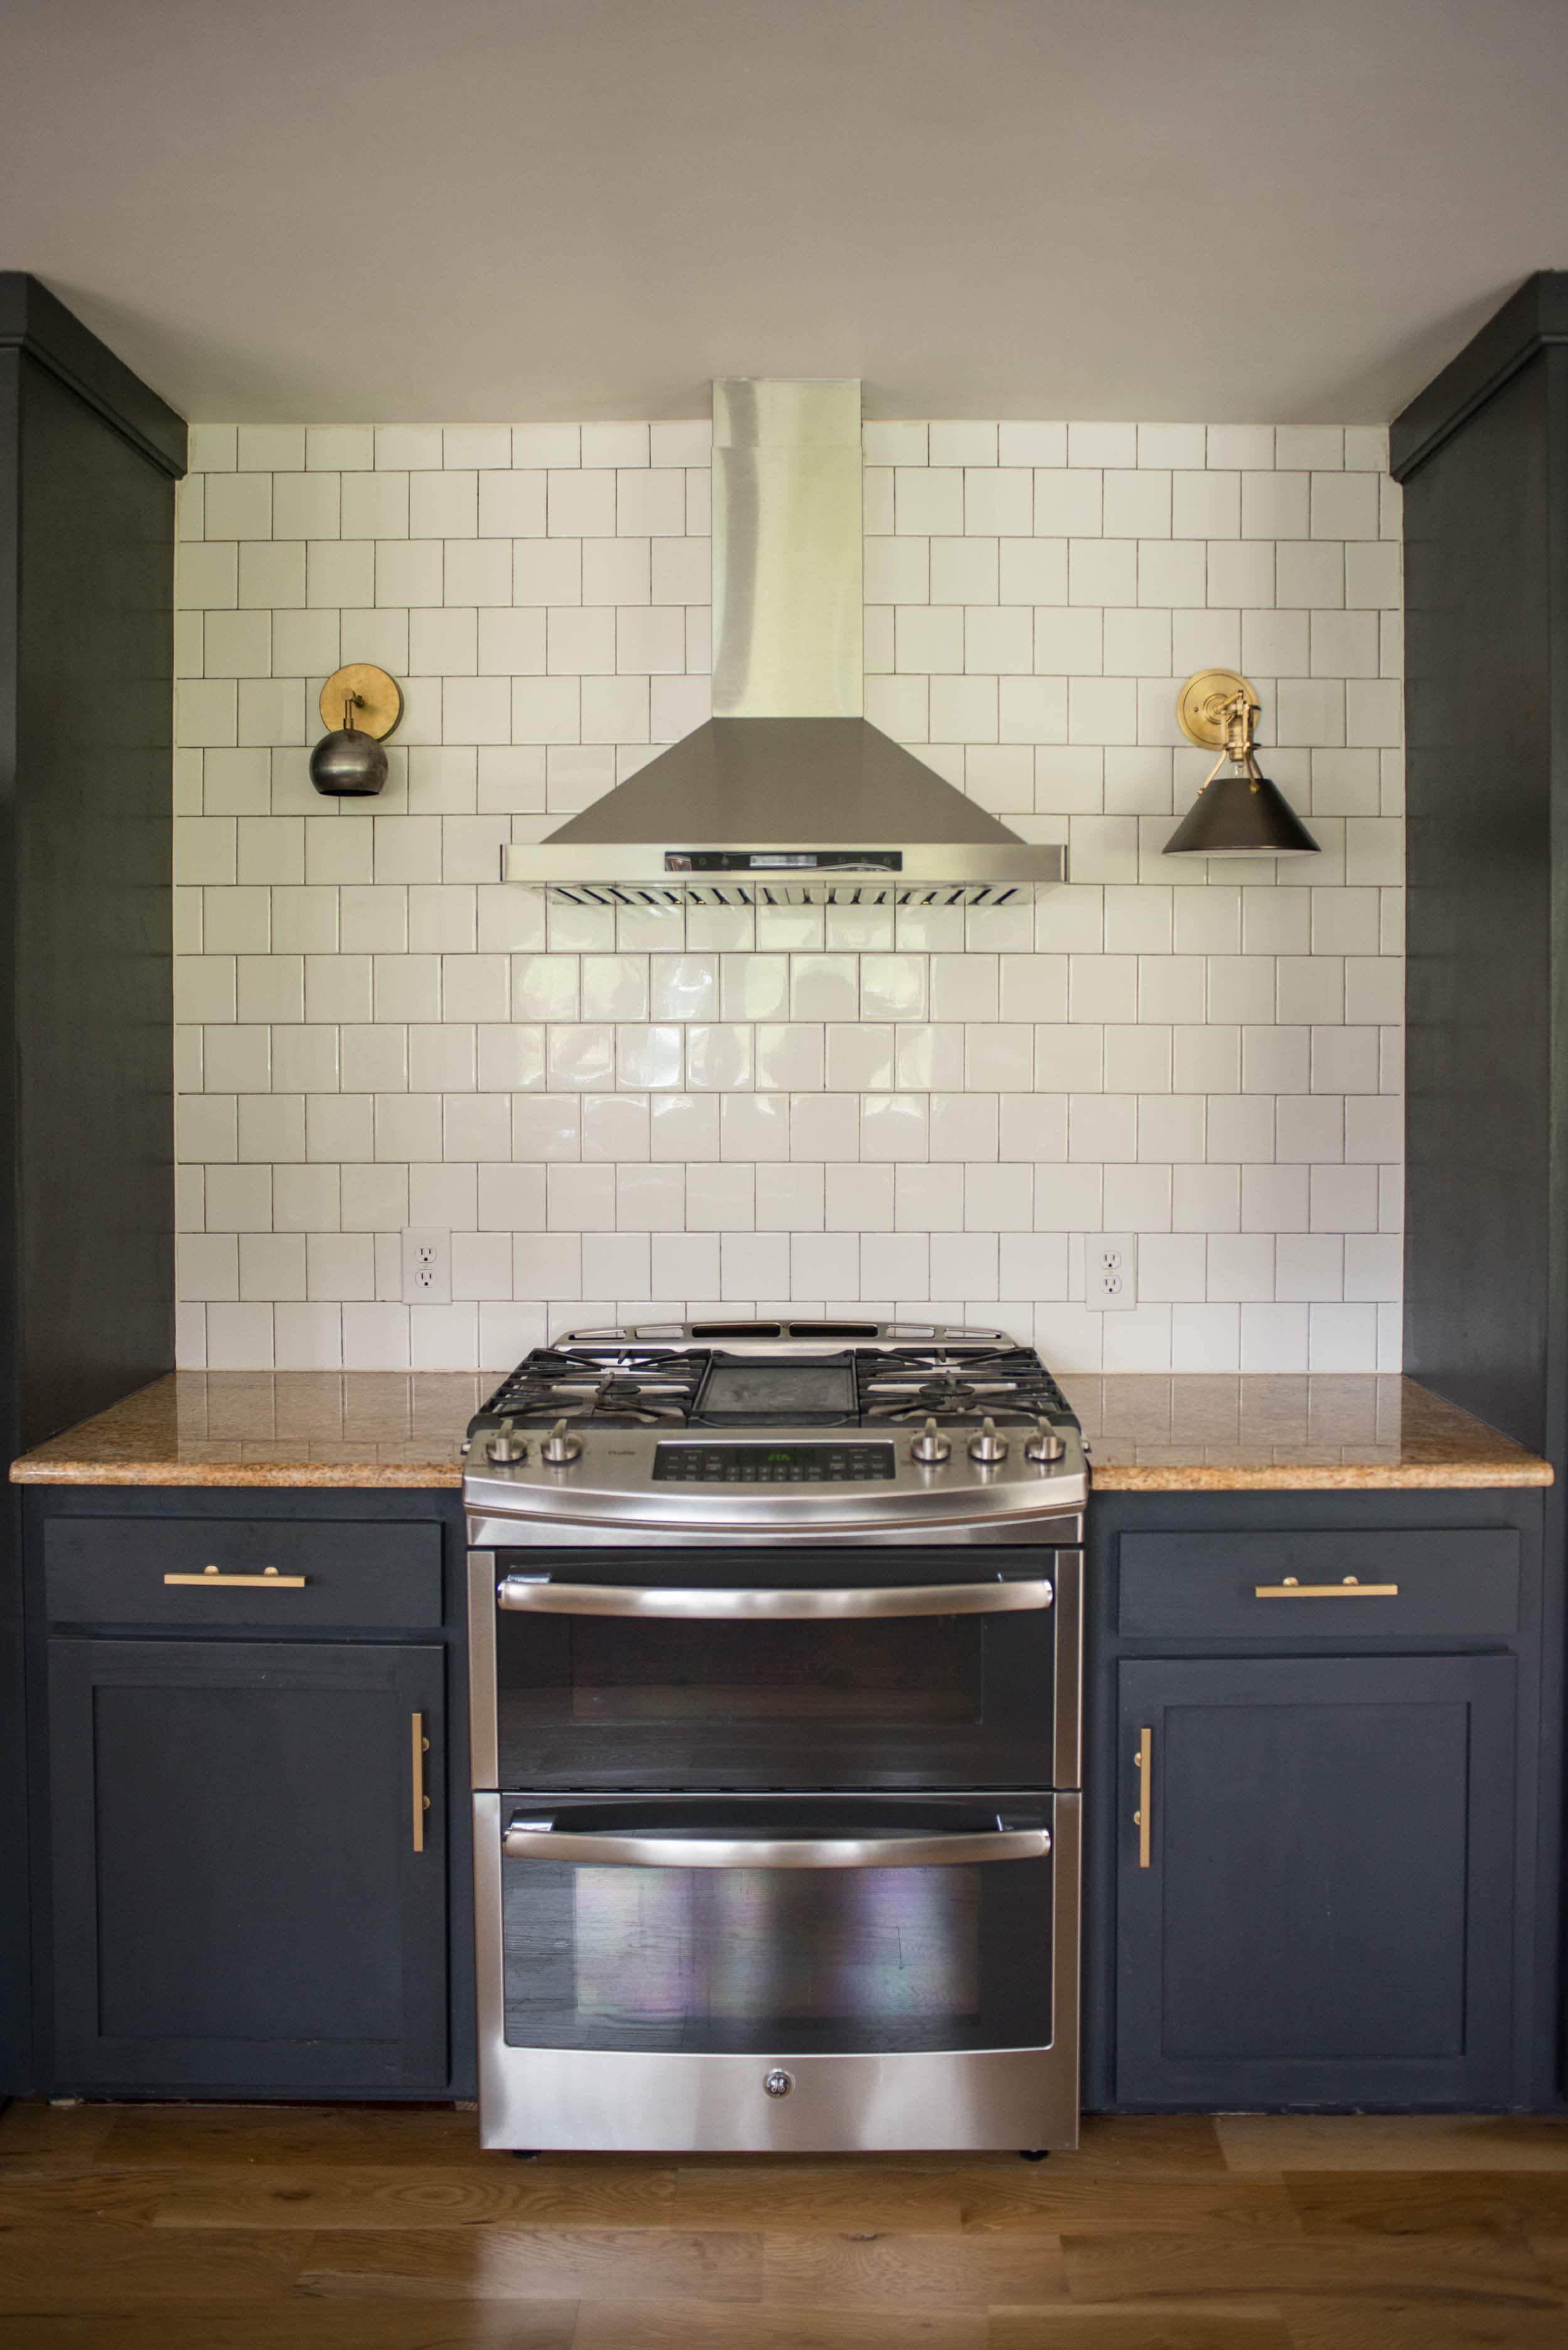 Different kitchen sconces showing scale on each side of oven.